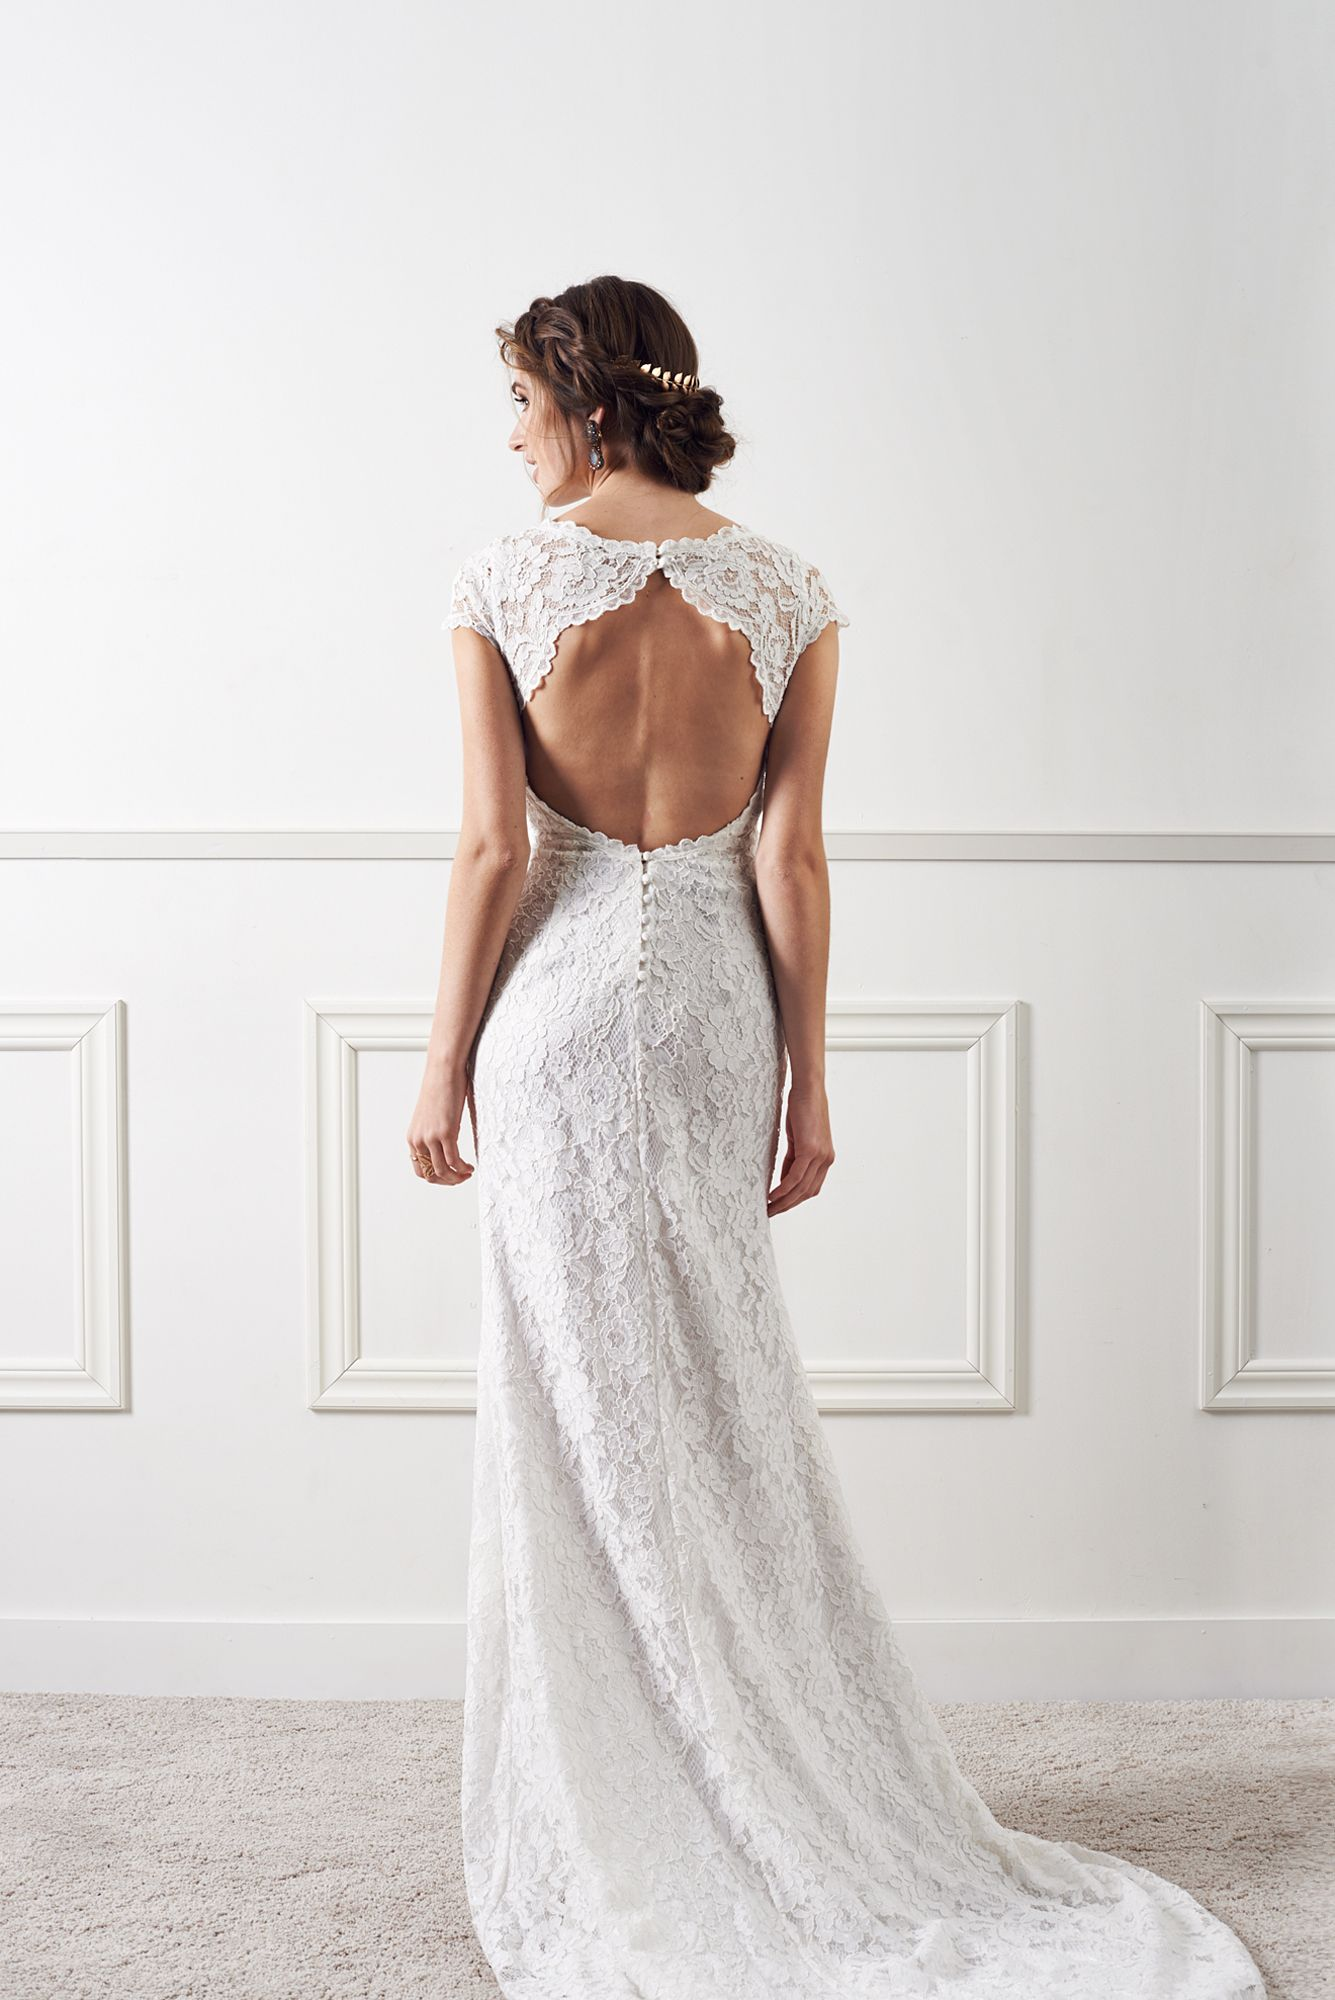 Elise Rose lace wedding gown from By Malina 2016 Wedding Collection